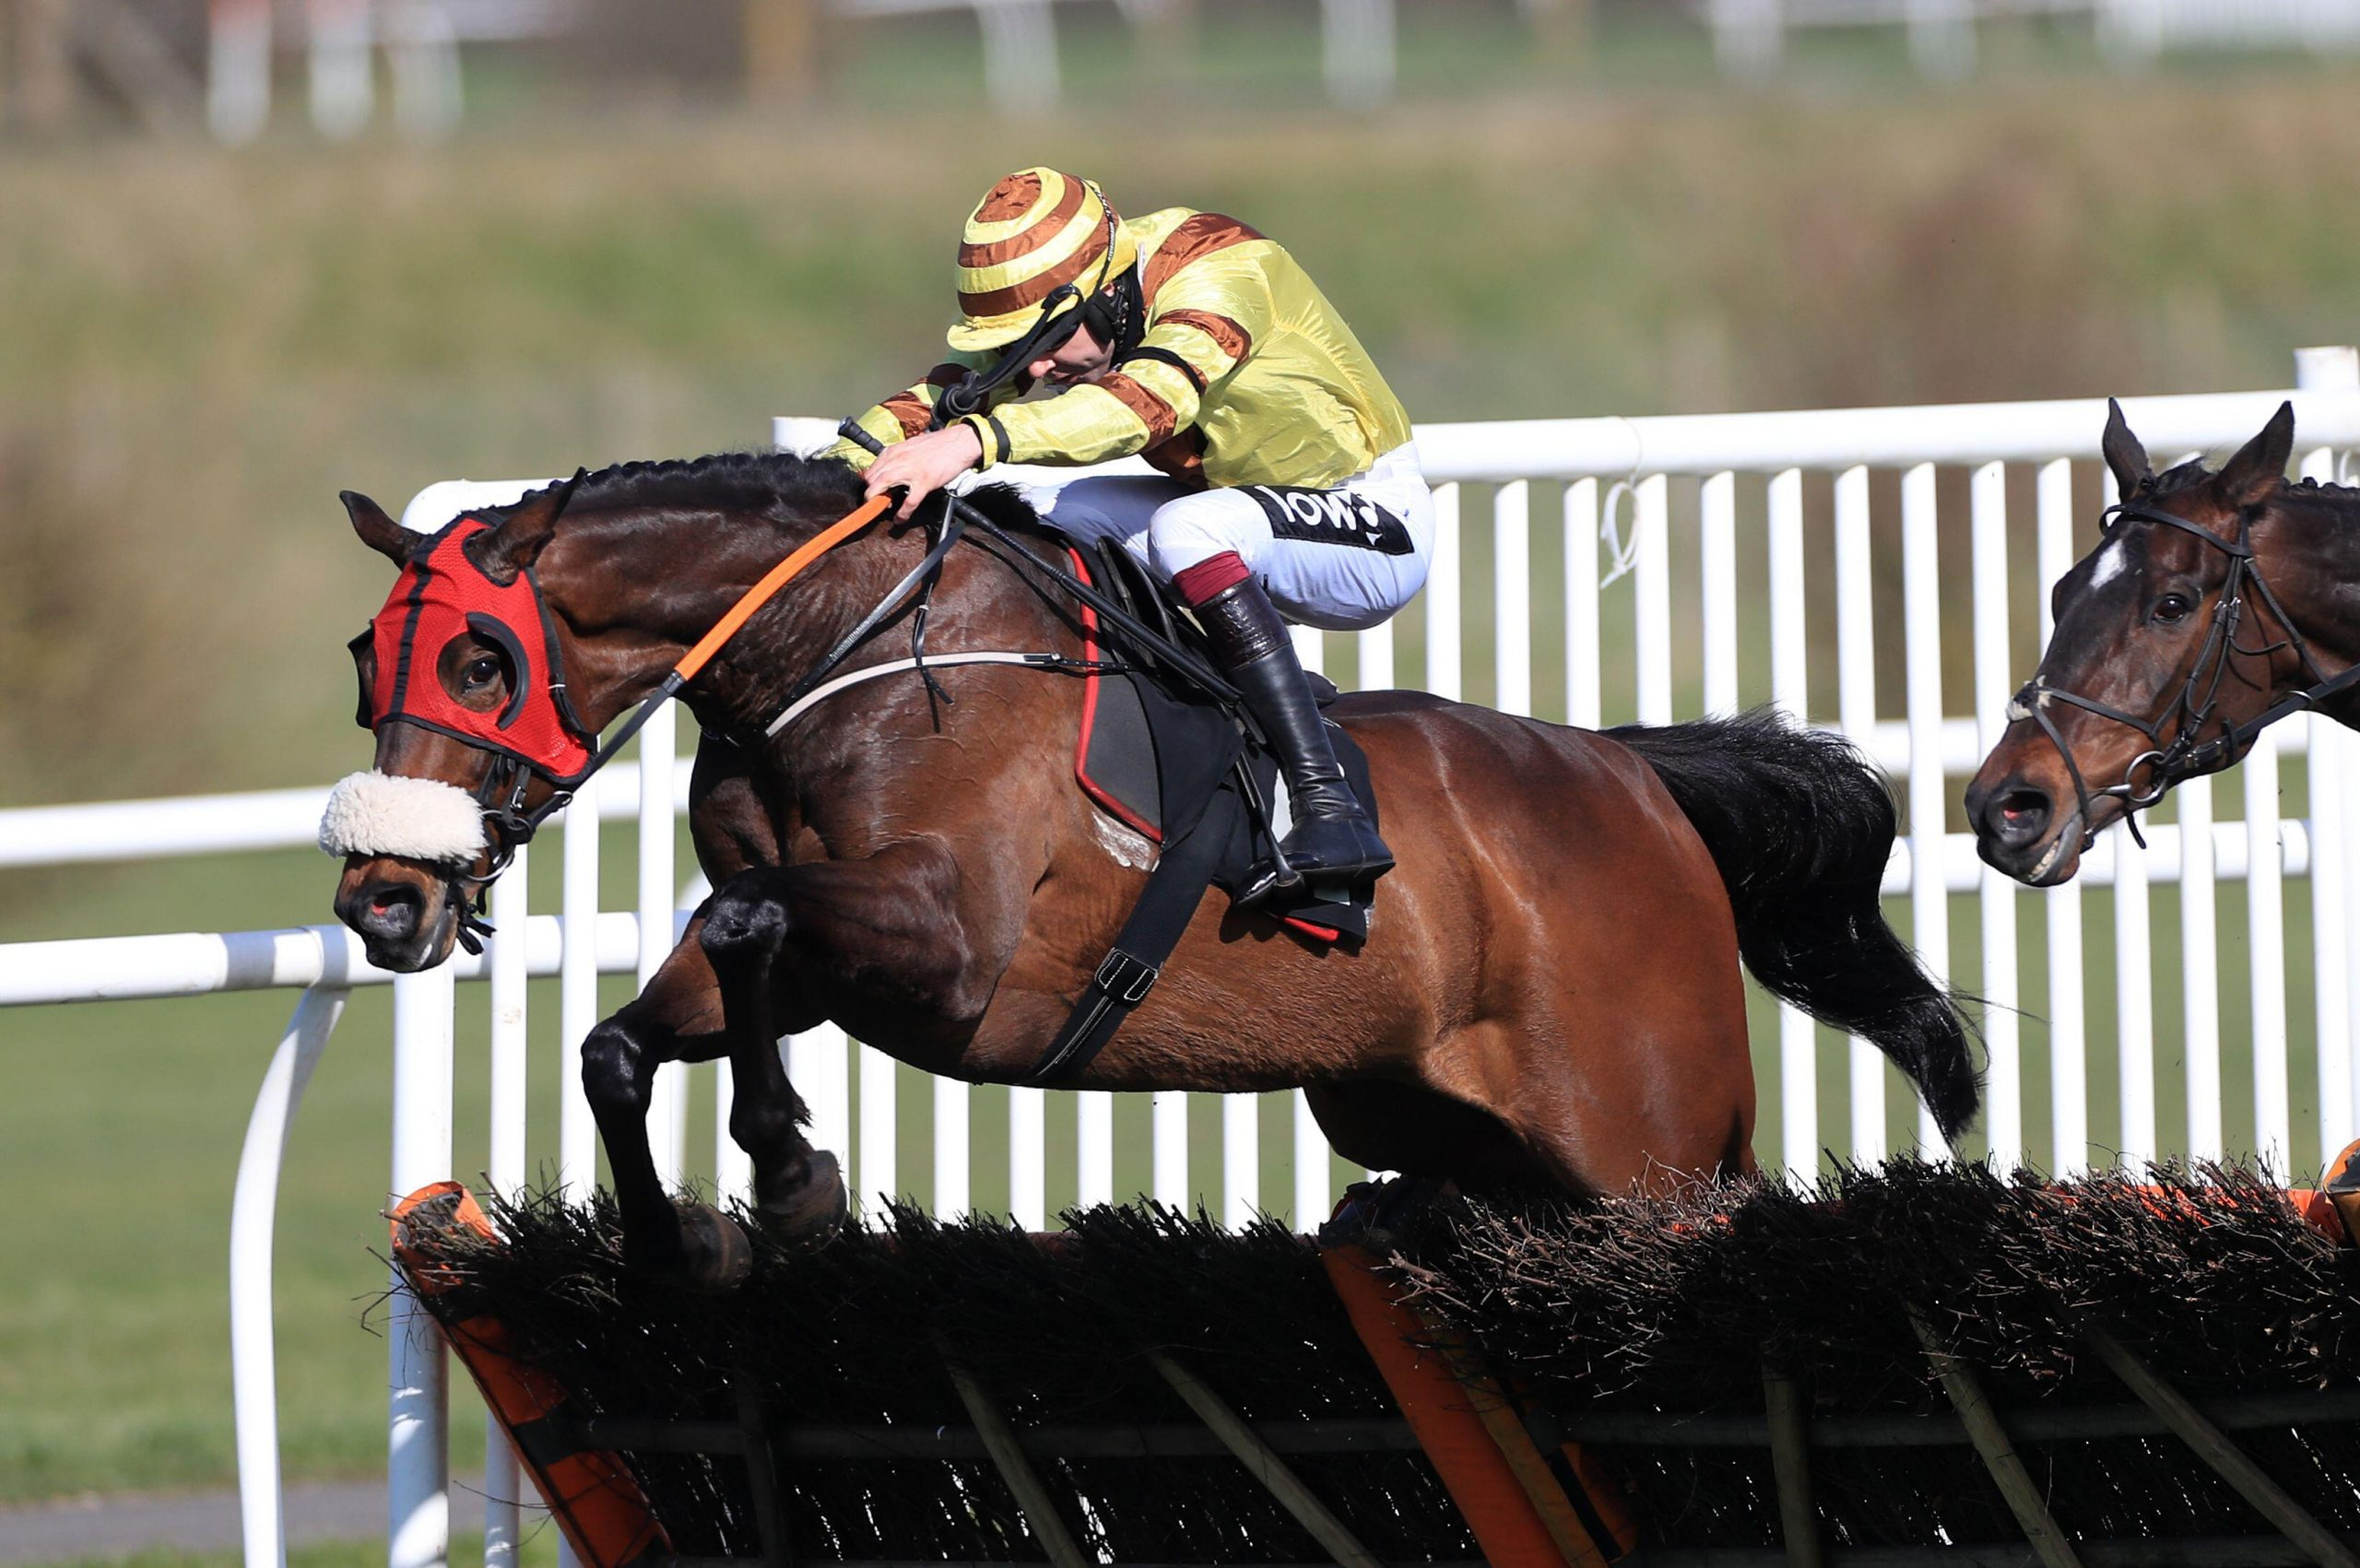 Aiden Coleman riding Made For You on their way to winning the Watch Racing TV In Stunning HD Handicap Hurdle at Market Rasen Racecourse. Picture date: Wednesday March 24, 2021.